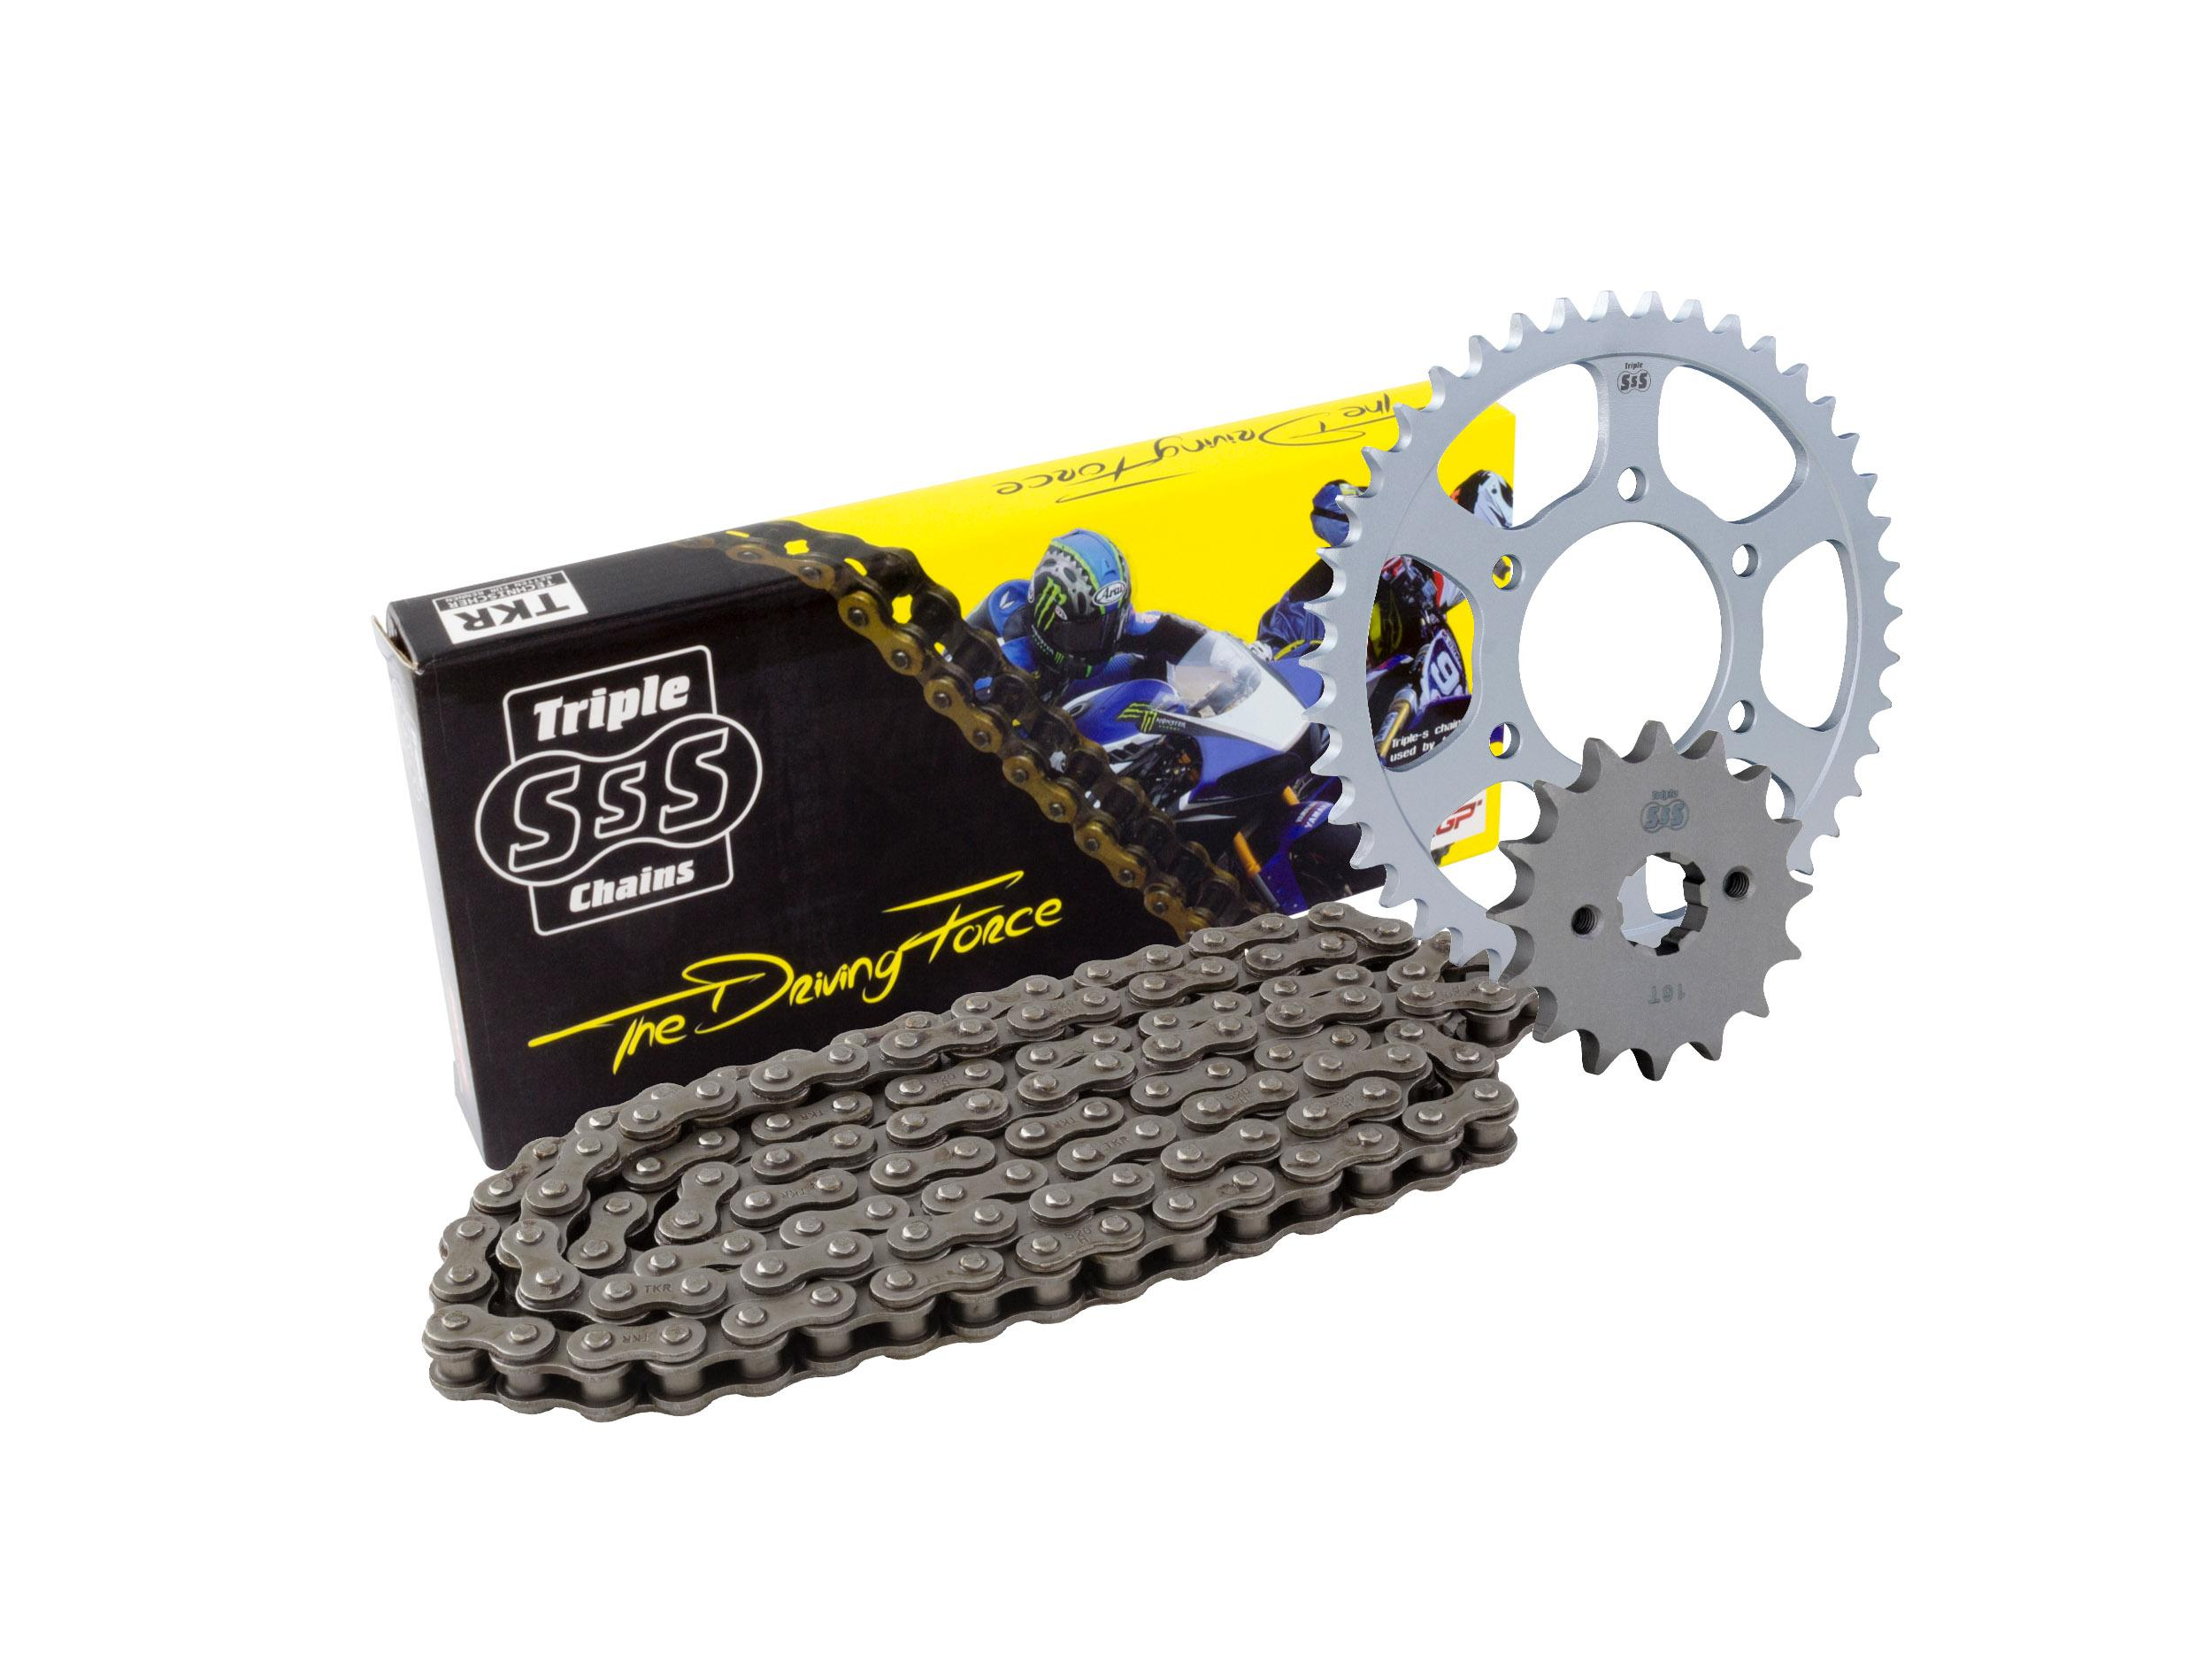 Suzuki RV125 K7-K10 Van Van 07-10 Chain & Sprocket Kit: 15T Front, 49T Rear, HD Chain 428H 134 Link